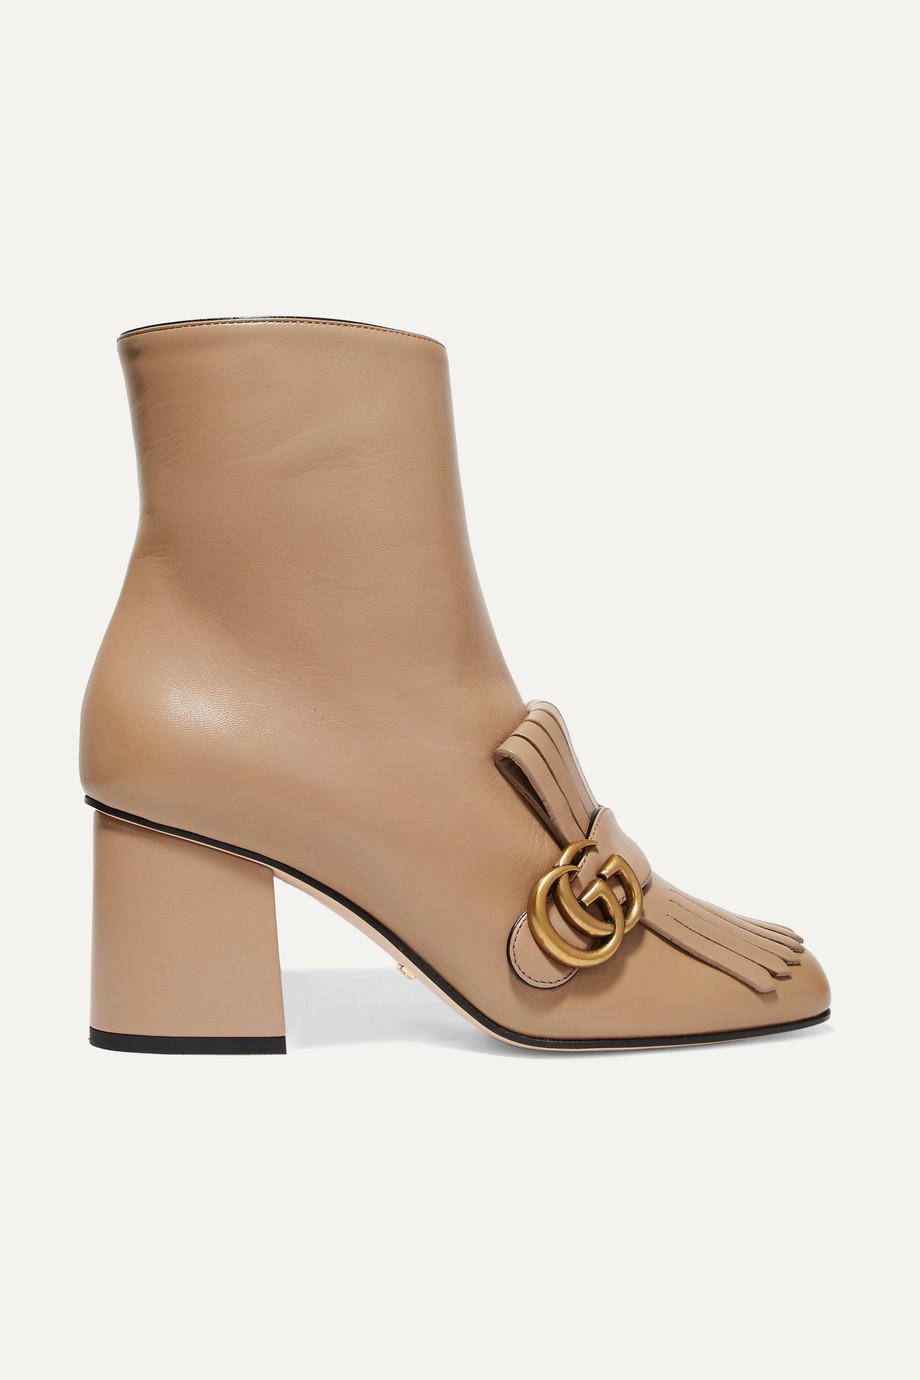 Gucci Marmont fringed logo-embellished leather ankle boots